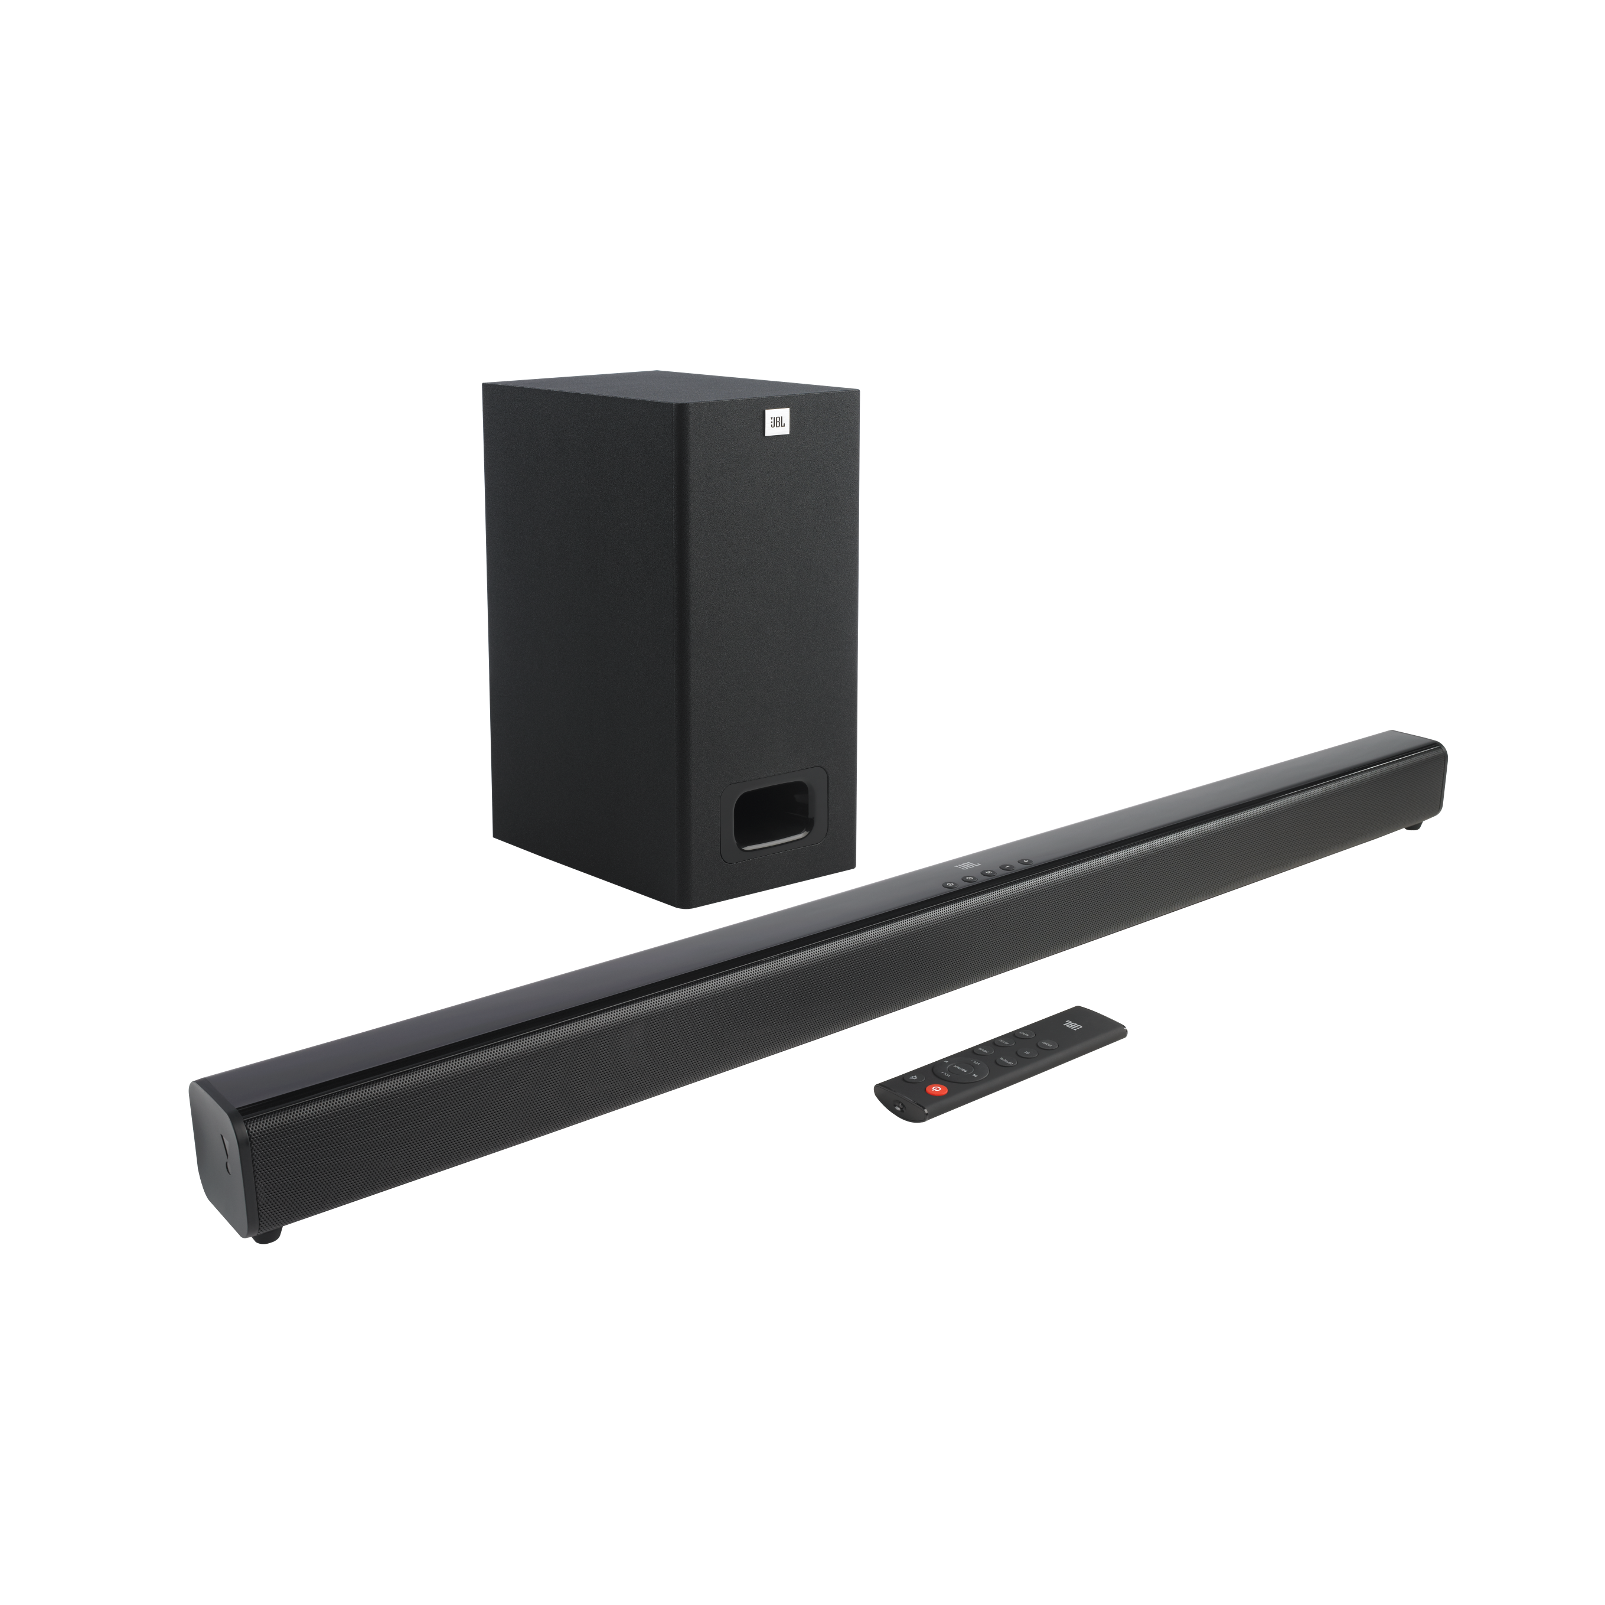 JBL Cinema SB230 - Black - 2.1 Channel Soundbar with Wired Subwoofer - Hero